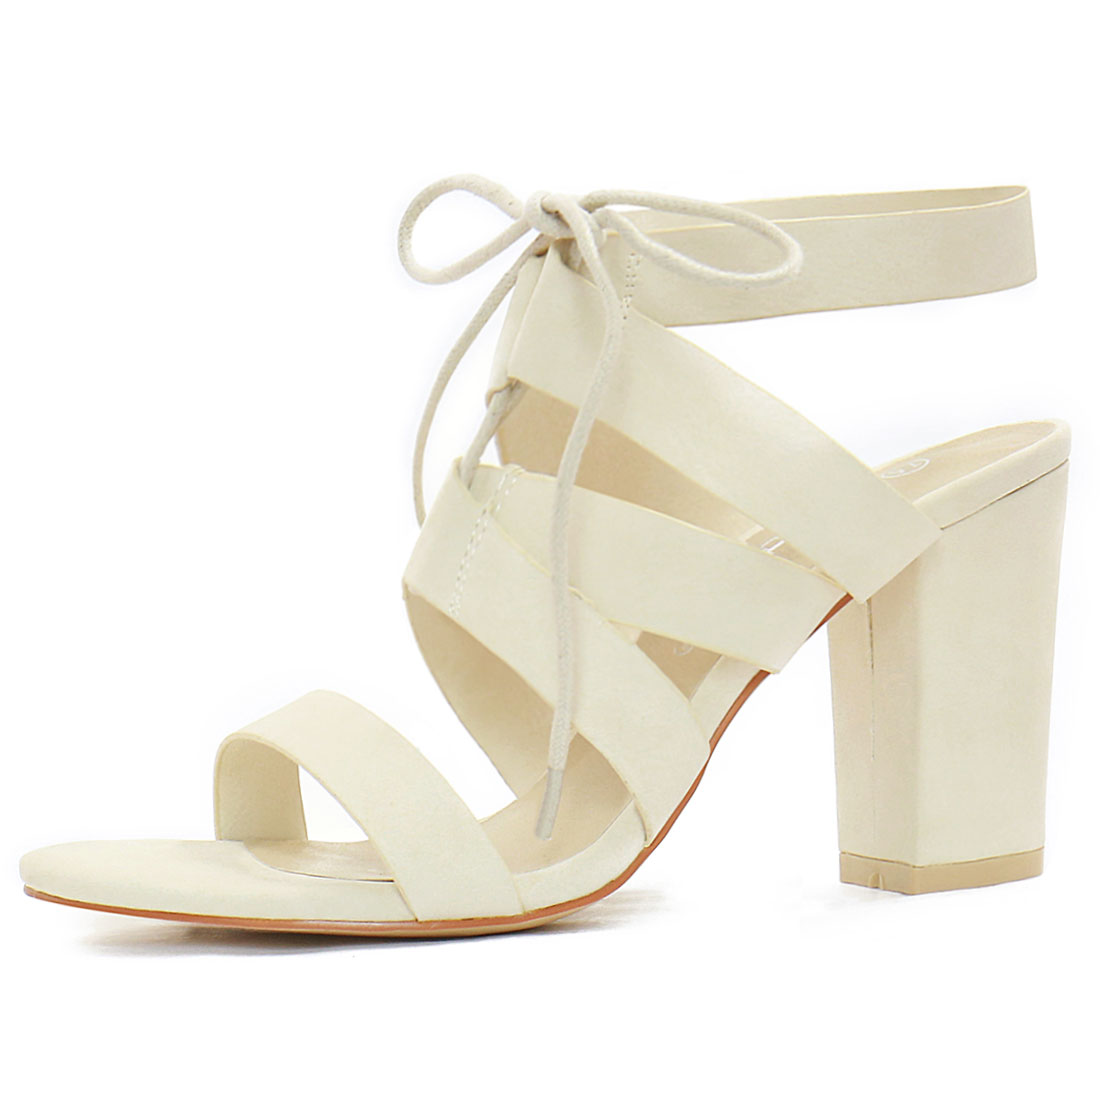 Women Chunky High Heels Cutout Detail Lace Up Sandals Ivory US 8.5